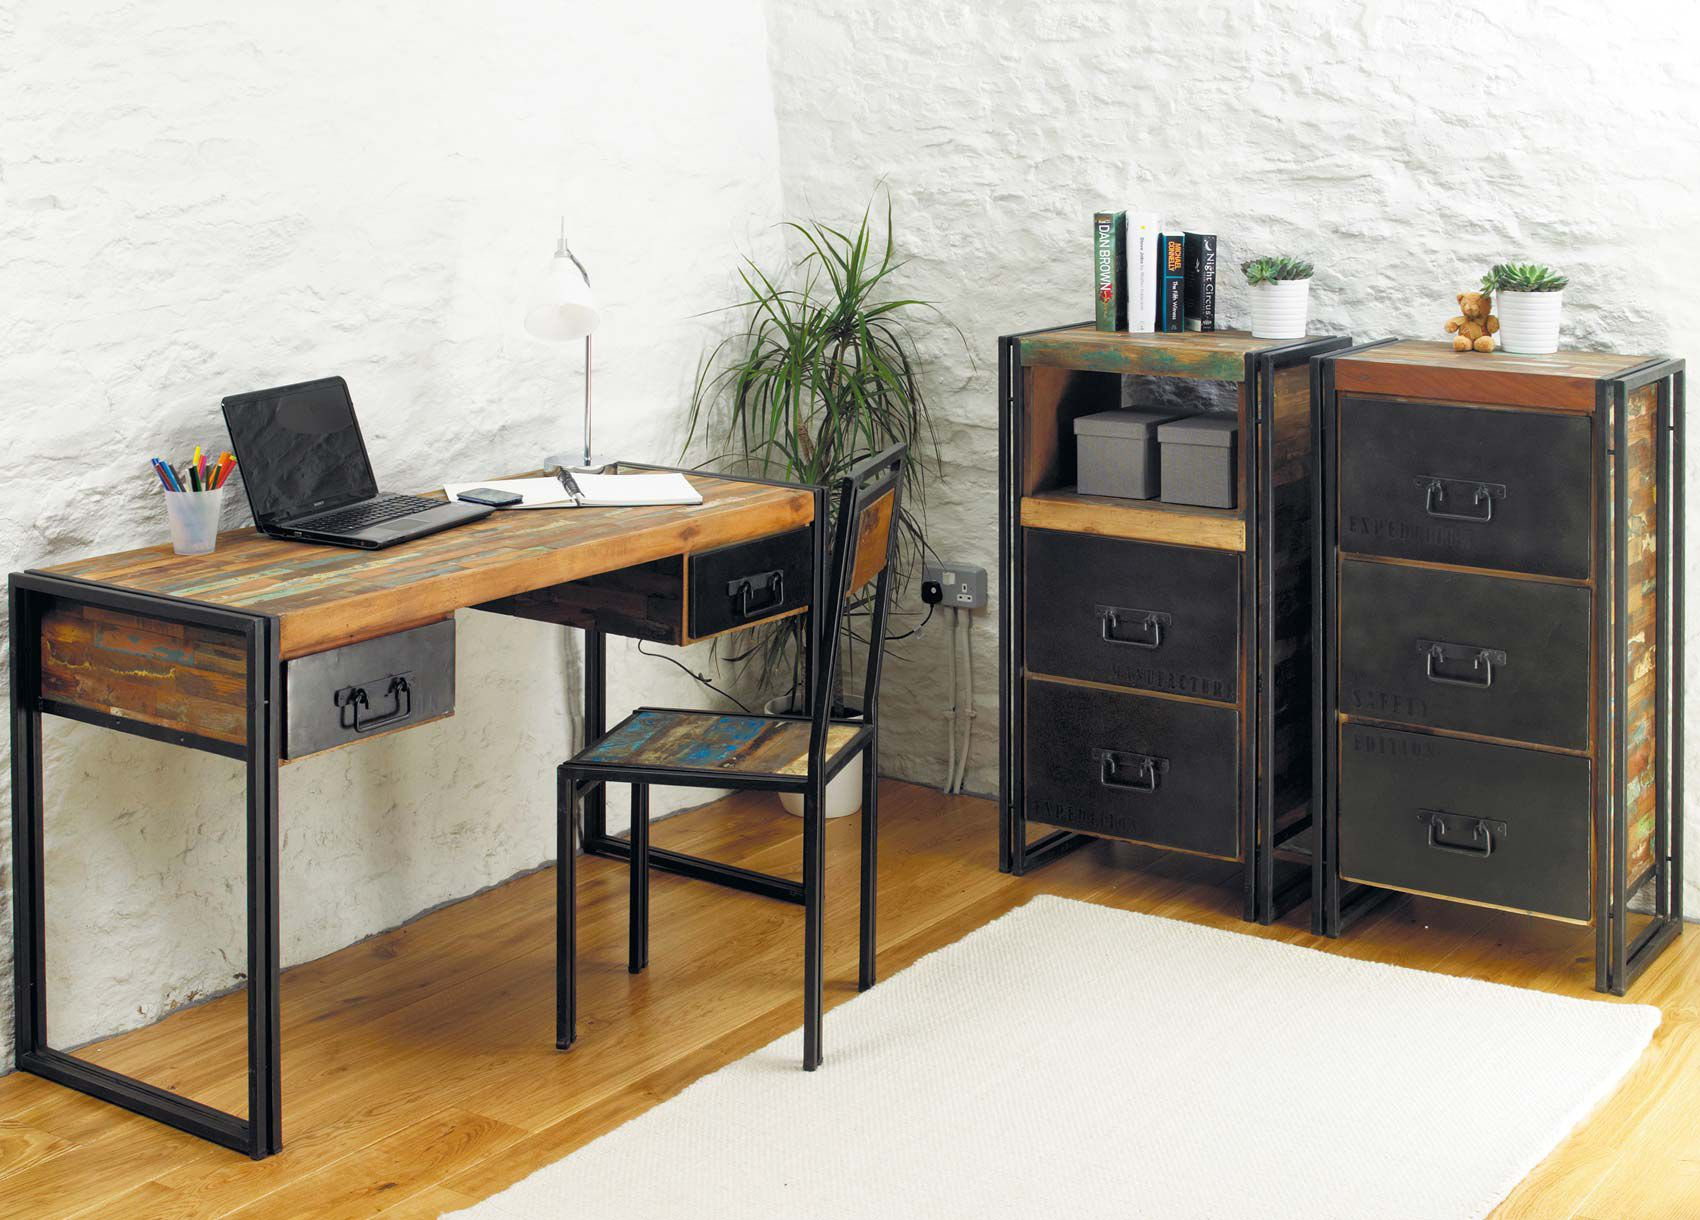 Chic office furniture Home Office Image Of Industrial Chic Furniture Pieces Pinterest Image Of Industrial Chic Furniture Pieces Furniture Pinterest